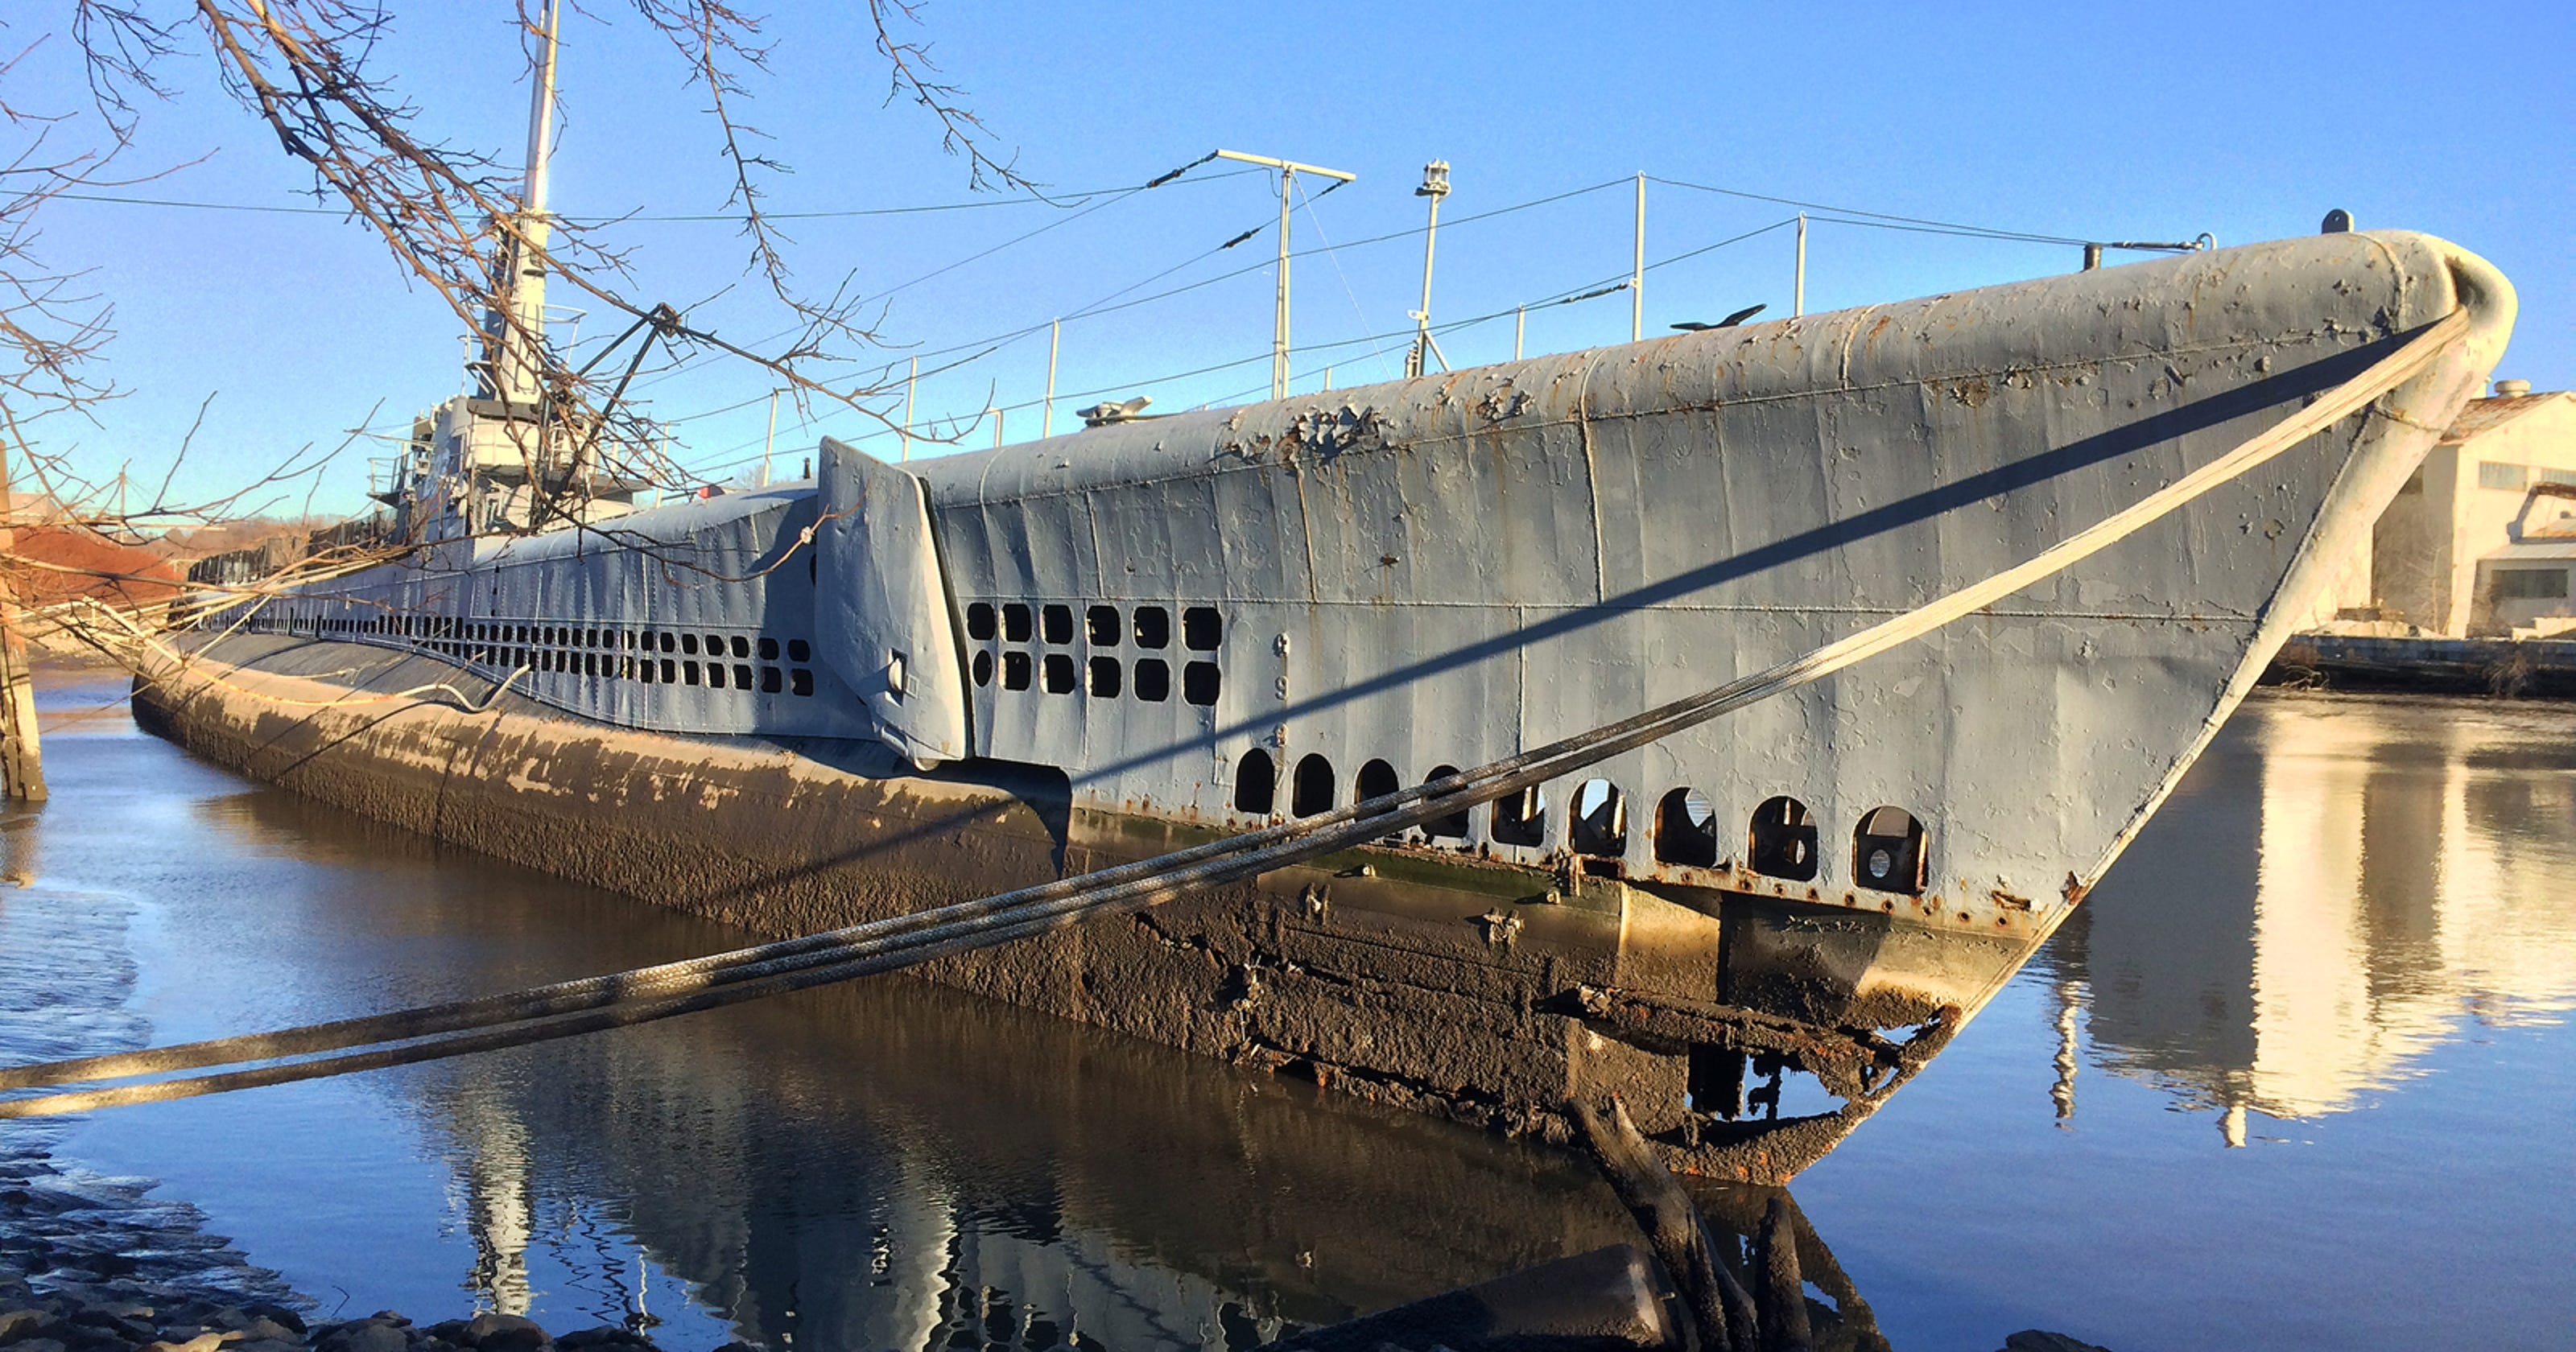 Weird NJ: Submarine Ling remains stuck in the muck